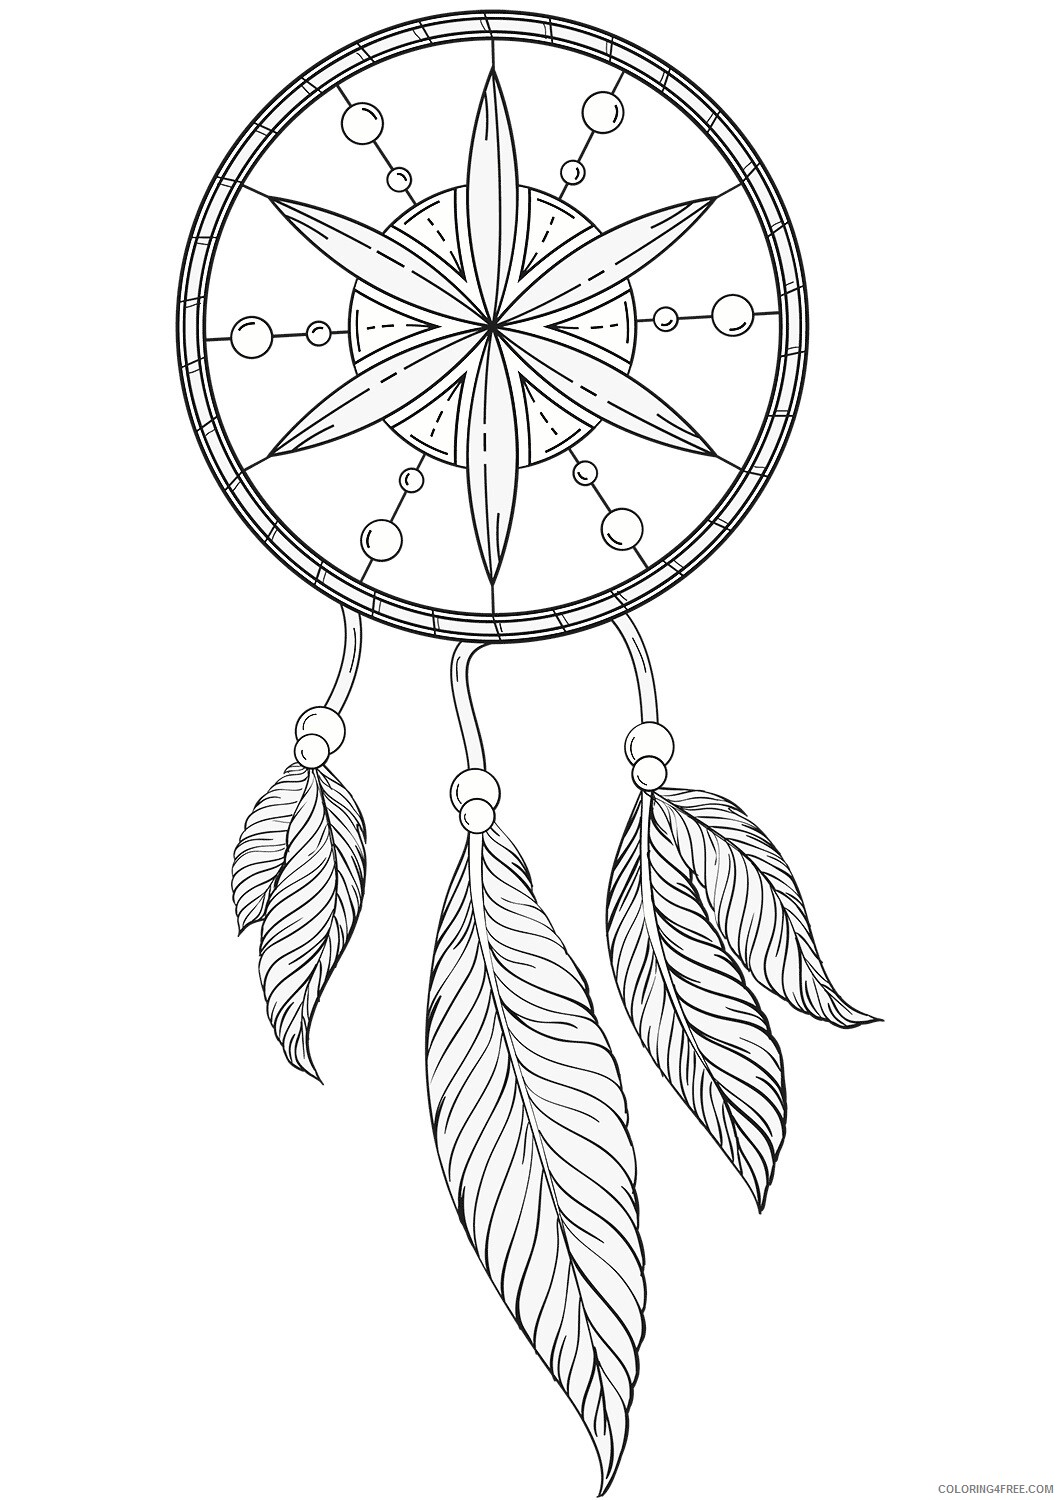 Dream Catcher Coloring Pages Free Dream Catcher Printable 2021 2087 Coloring4free